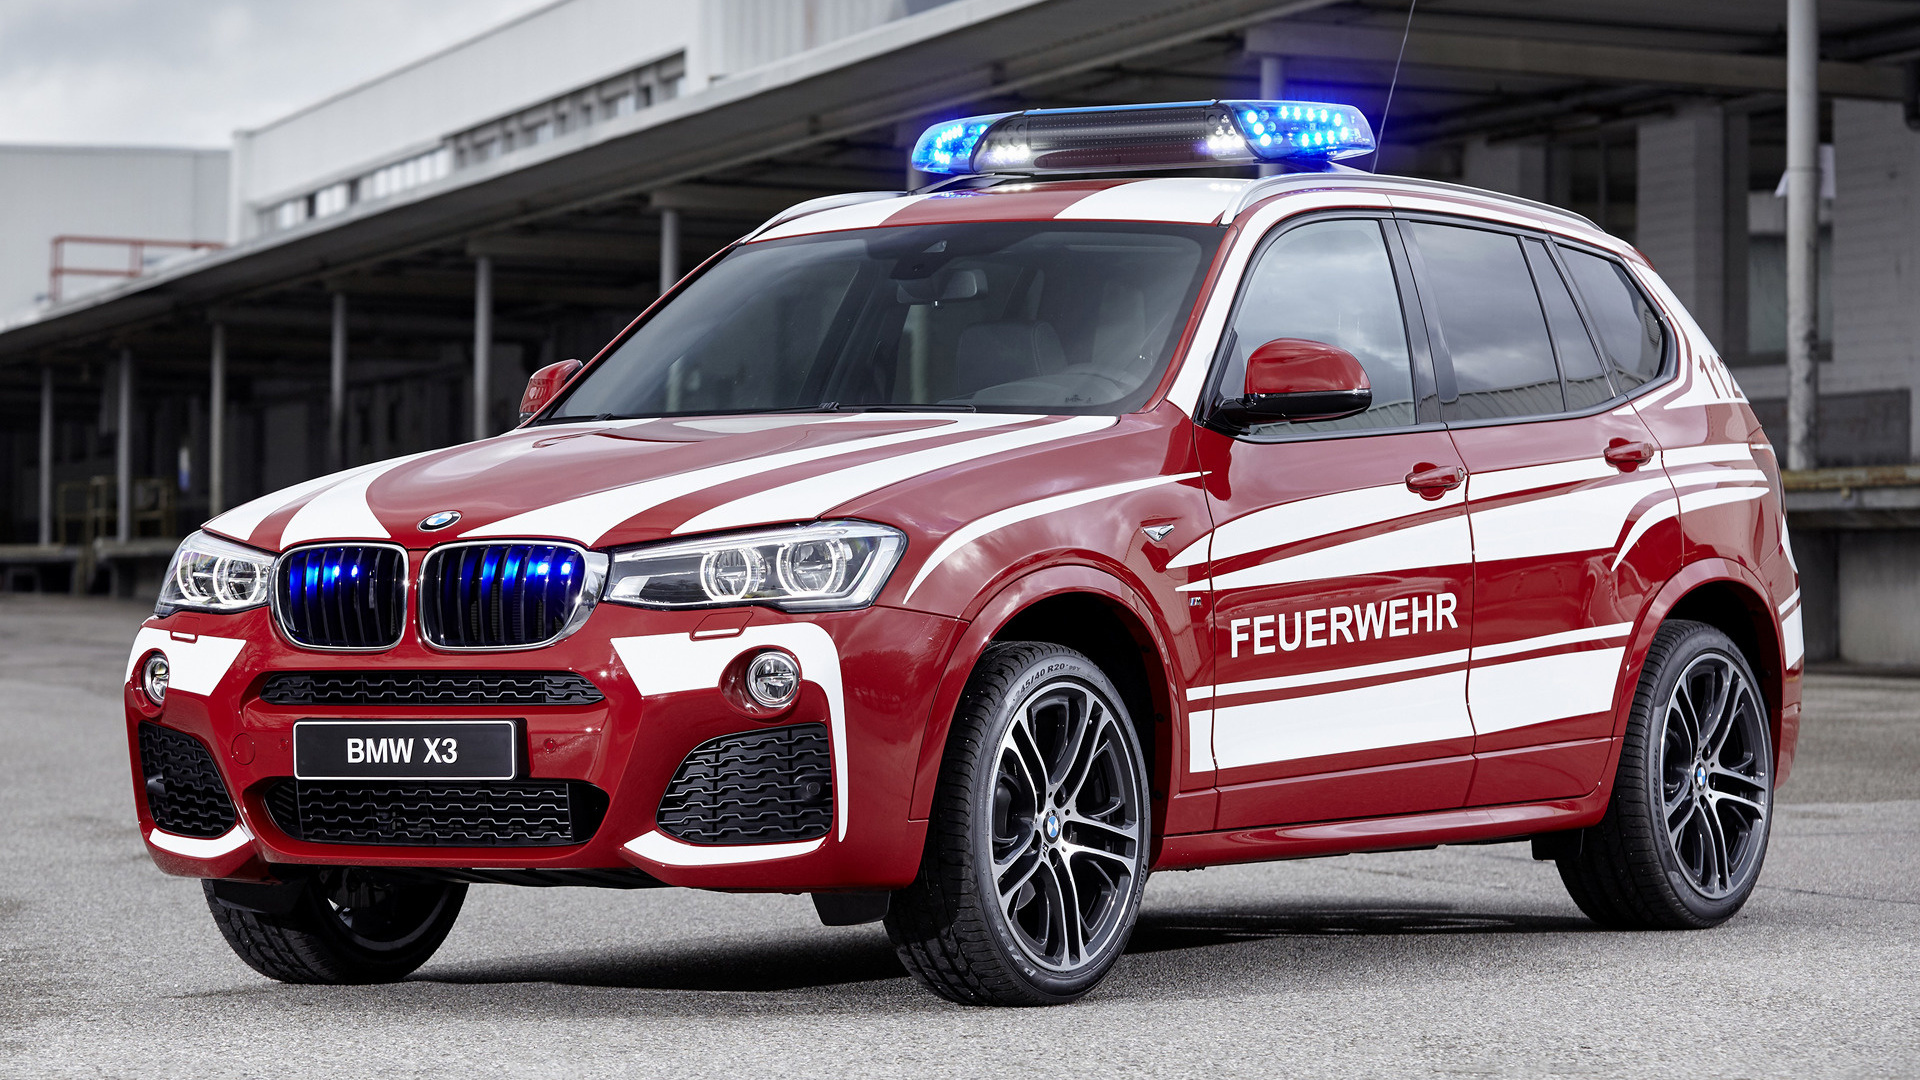 2016 BMW X3 M Sport Feuerwehr - Wallpapers and HD Images ...